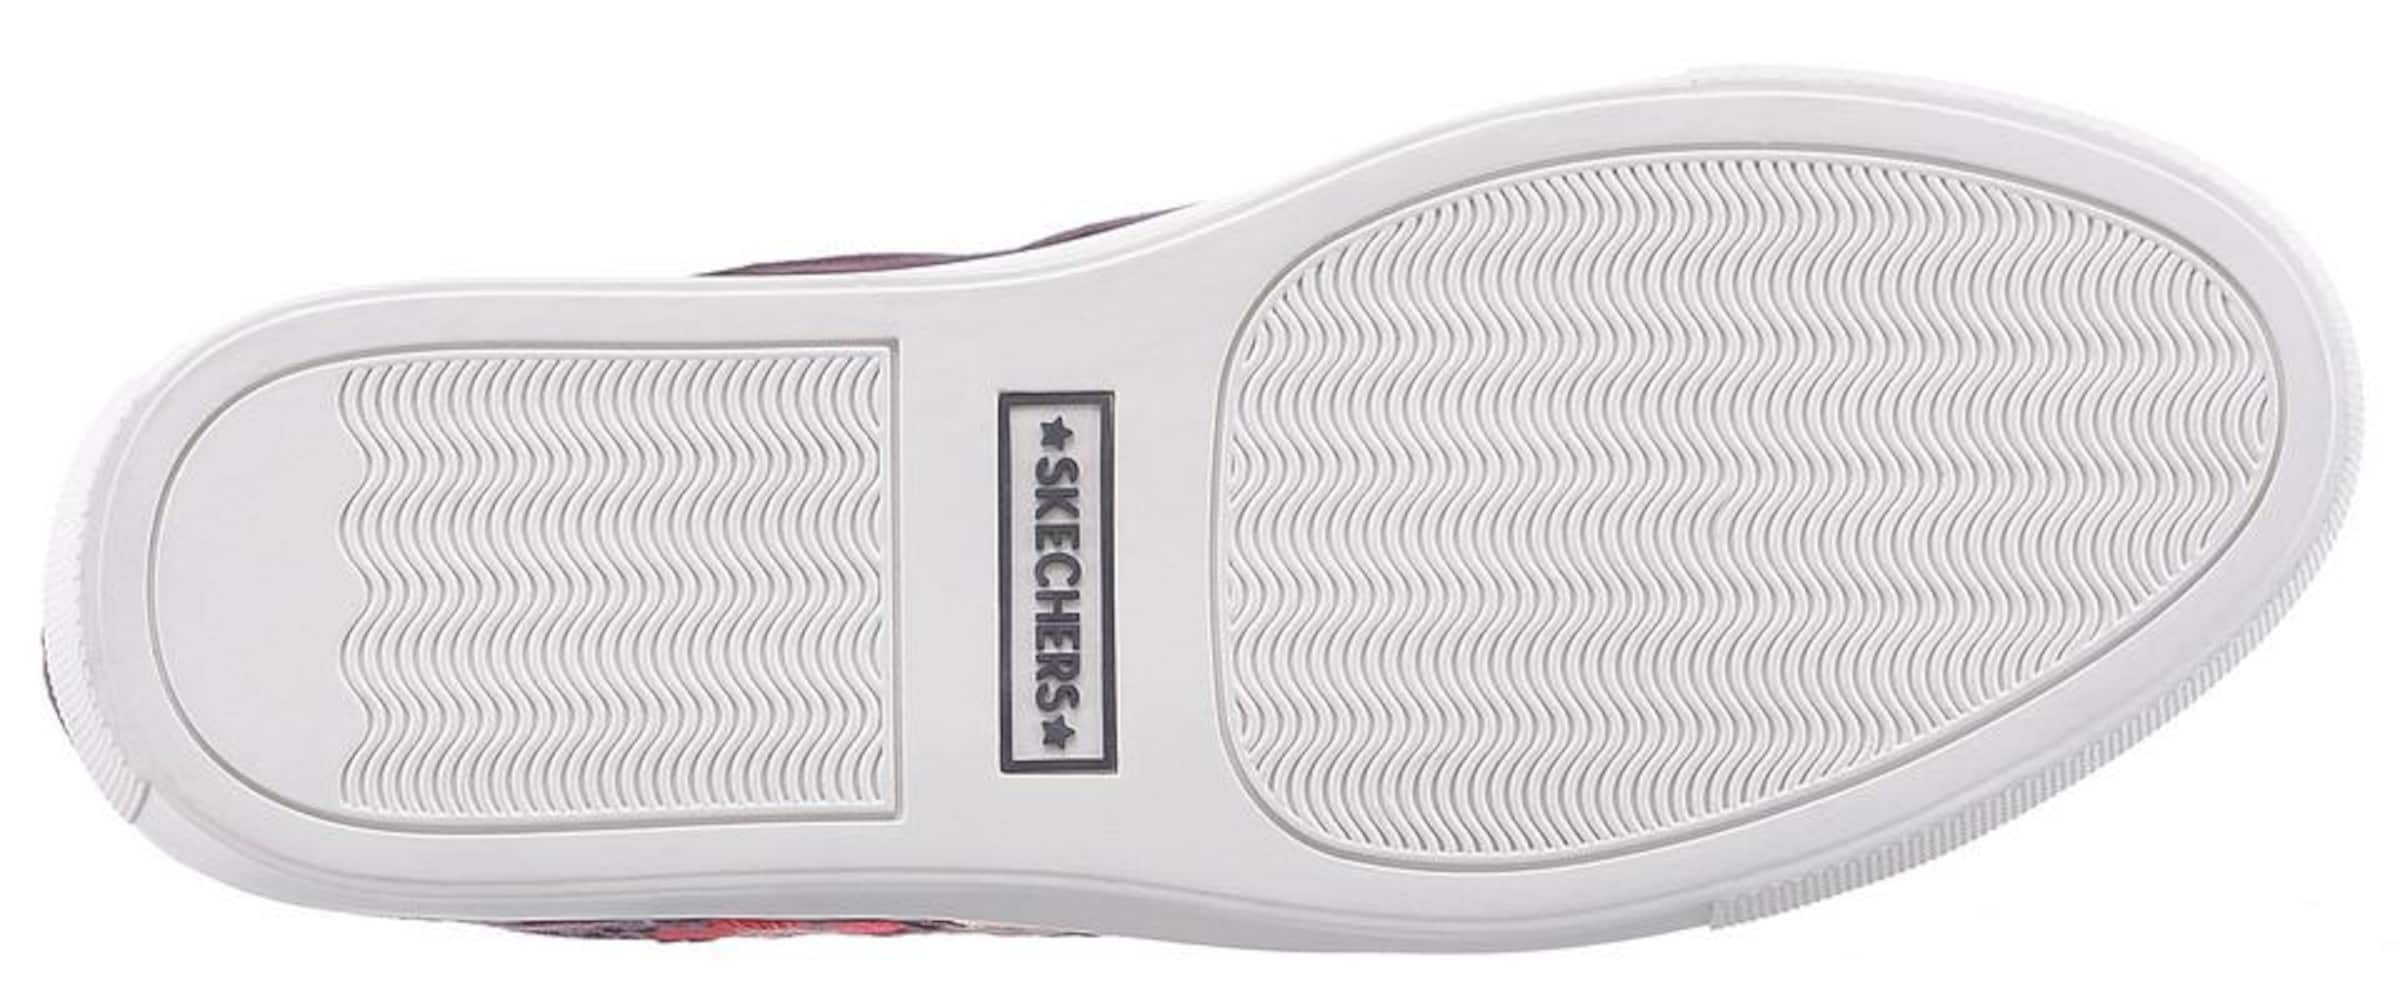 In Sneaker Bordeaux Sneaker In Bordeaux Skechers Sneaker Skechers 'vaso' 'vaso' Skechers 'vaso' In 9IEDH2